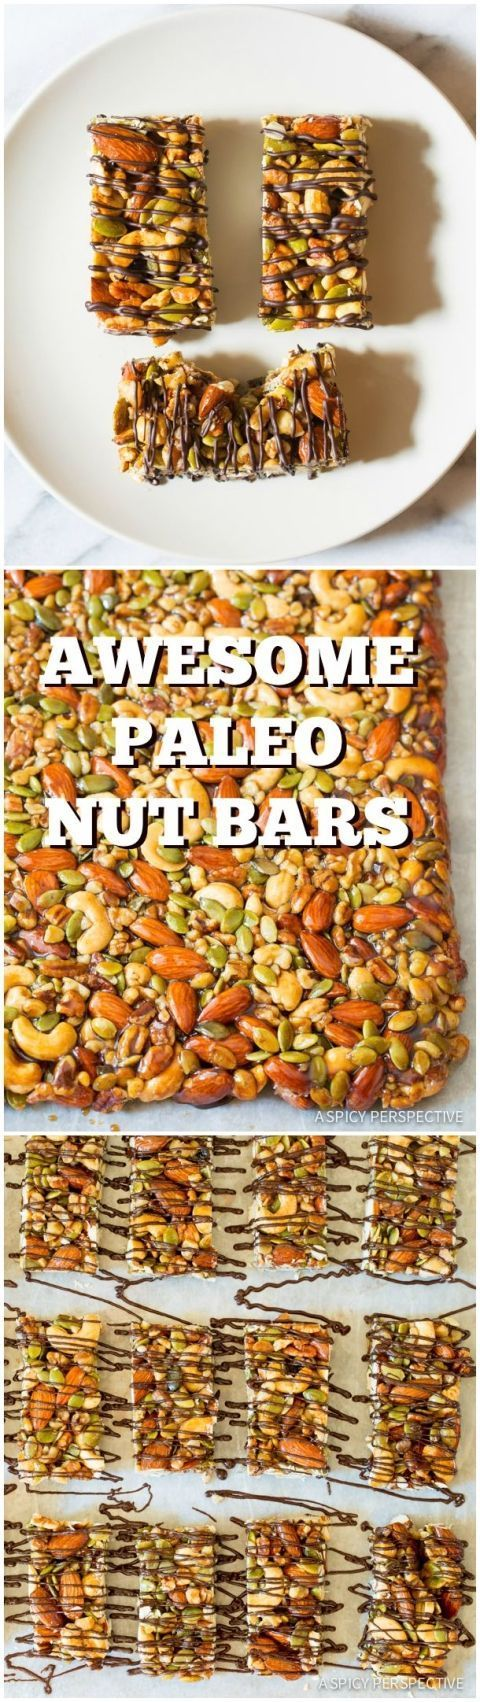 Crazy Over These Kid-Friendly Paleo Nut Bar Recipe with Chocolate Drizzle on http://ASpicyPerspective.com #paleo #vegan #glutenfree